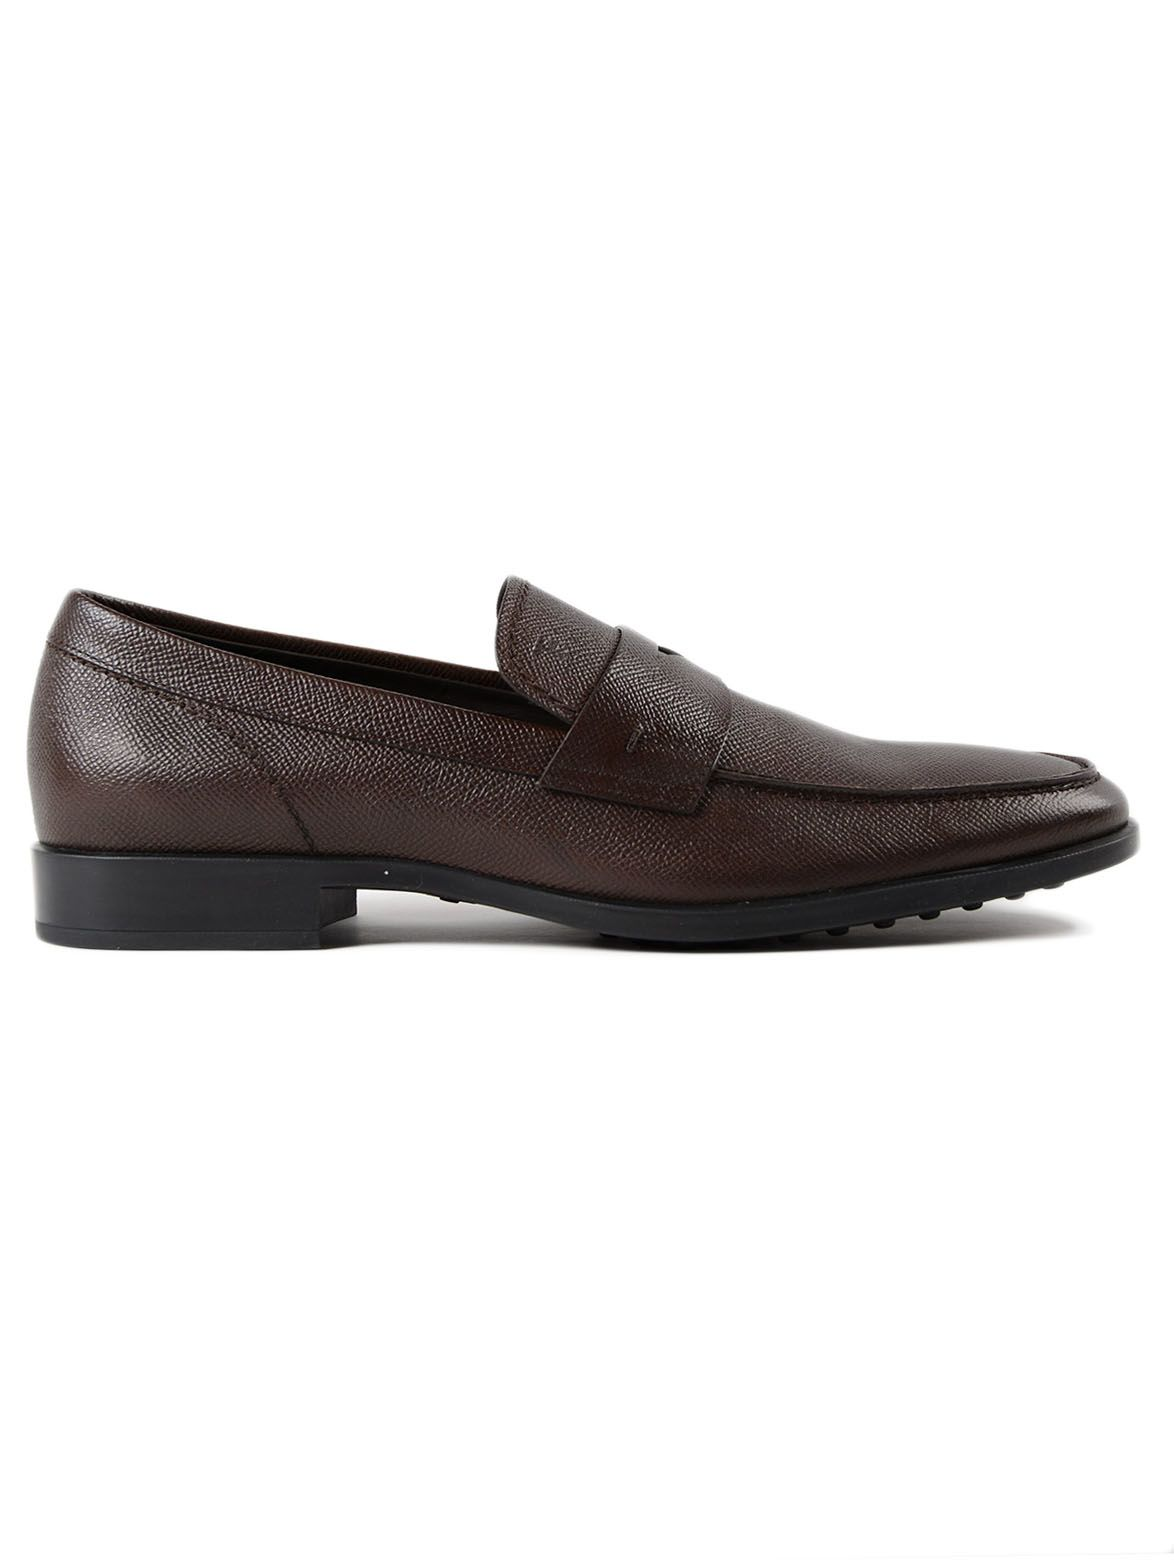 Tods Loafers Gum